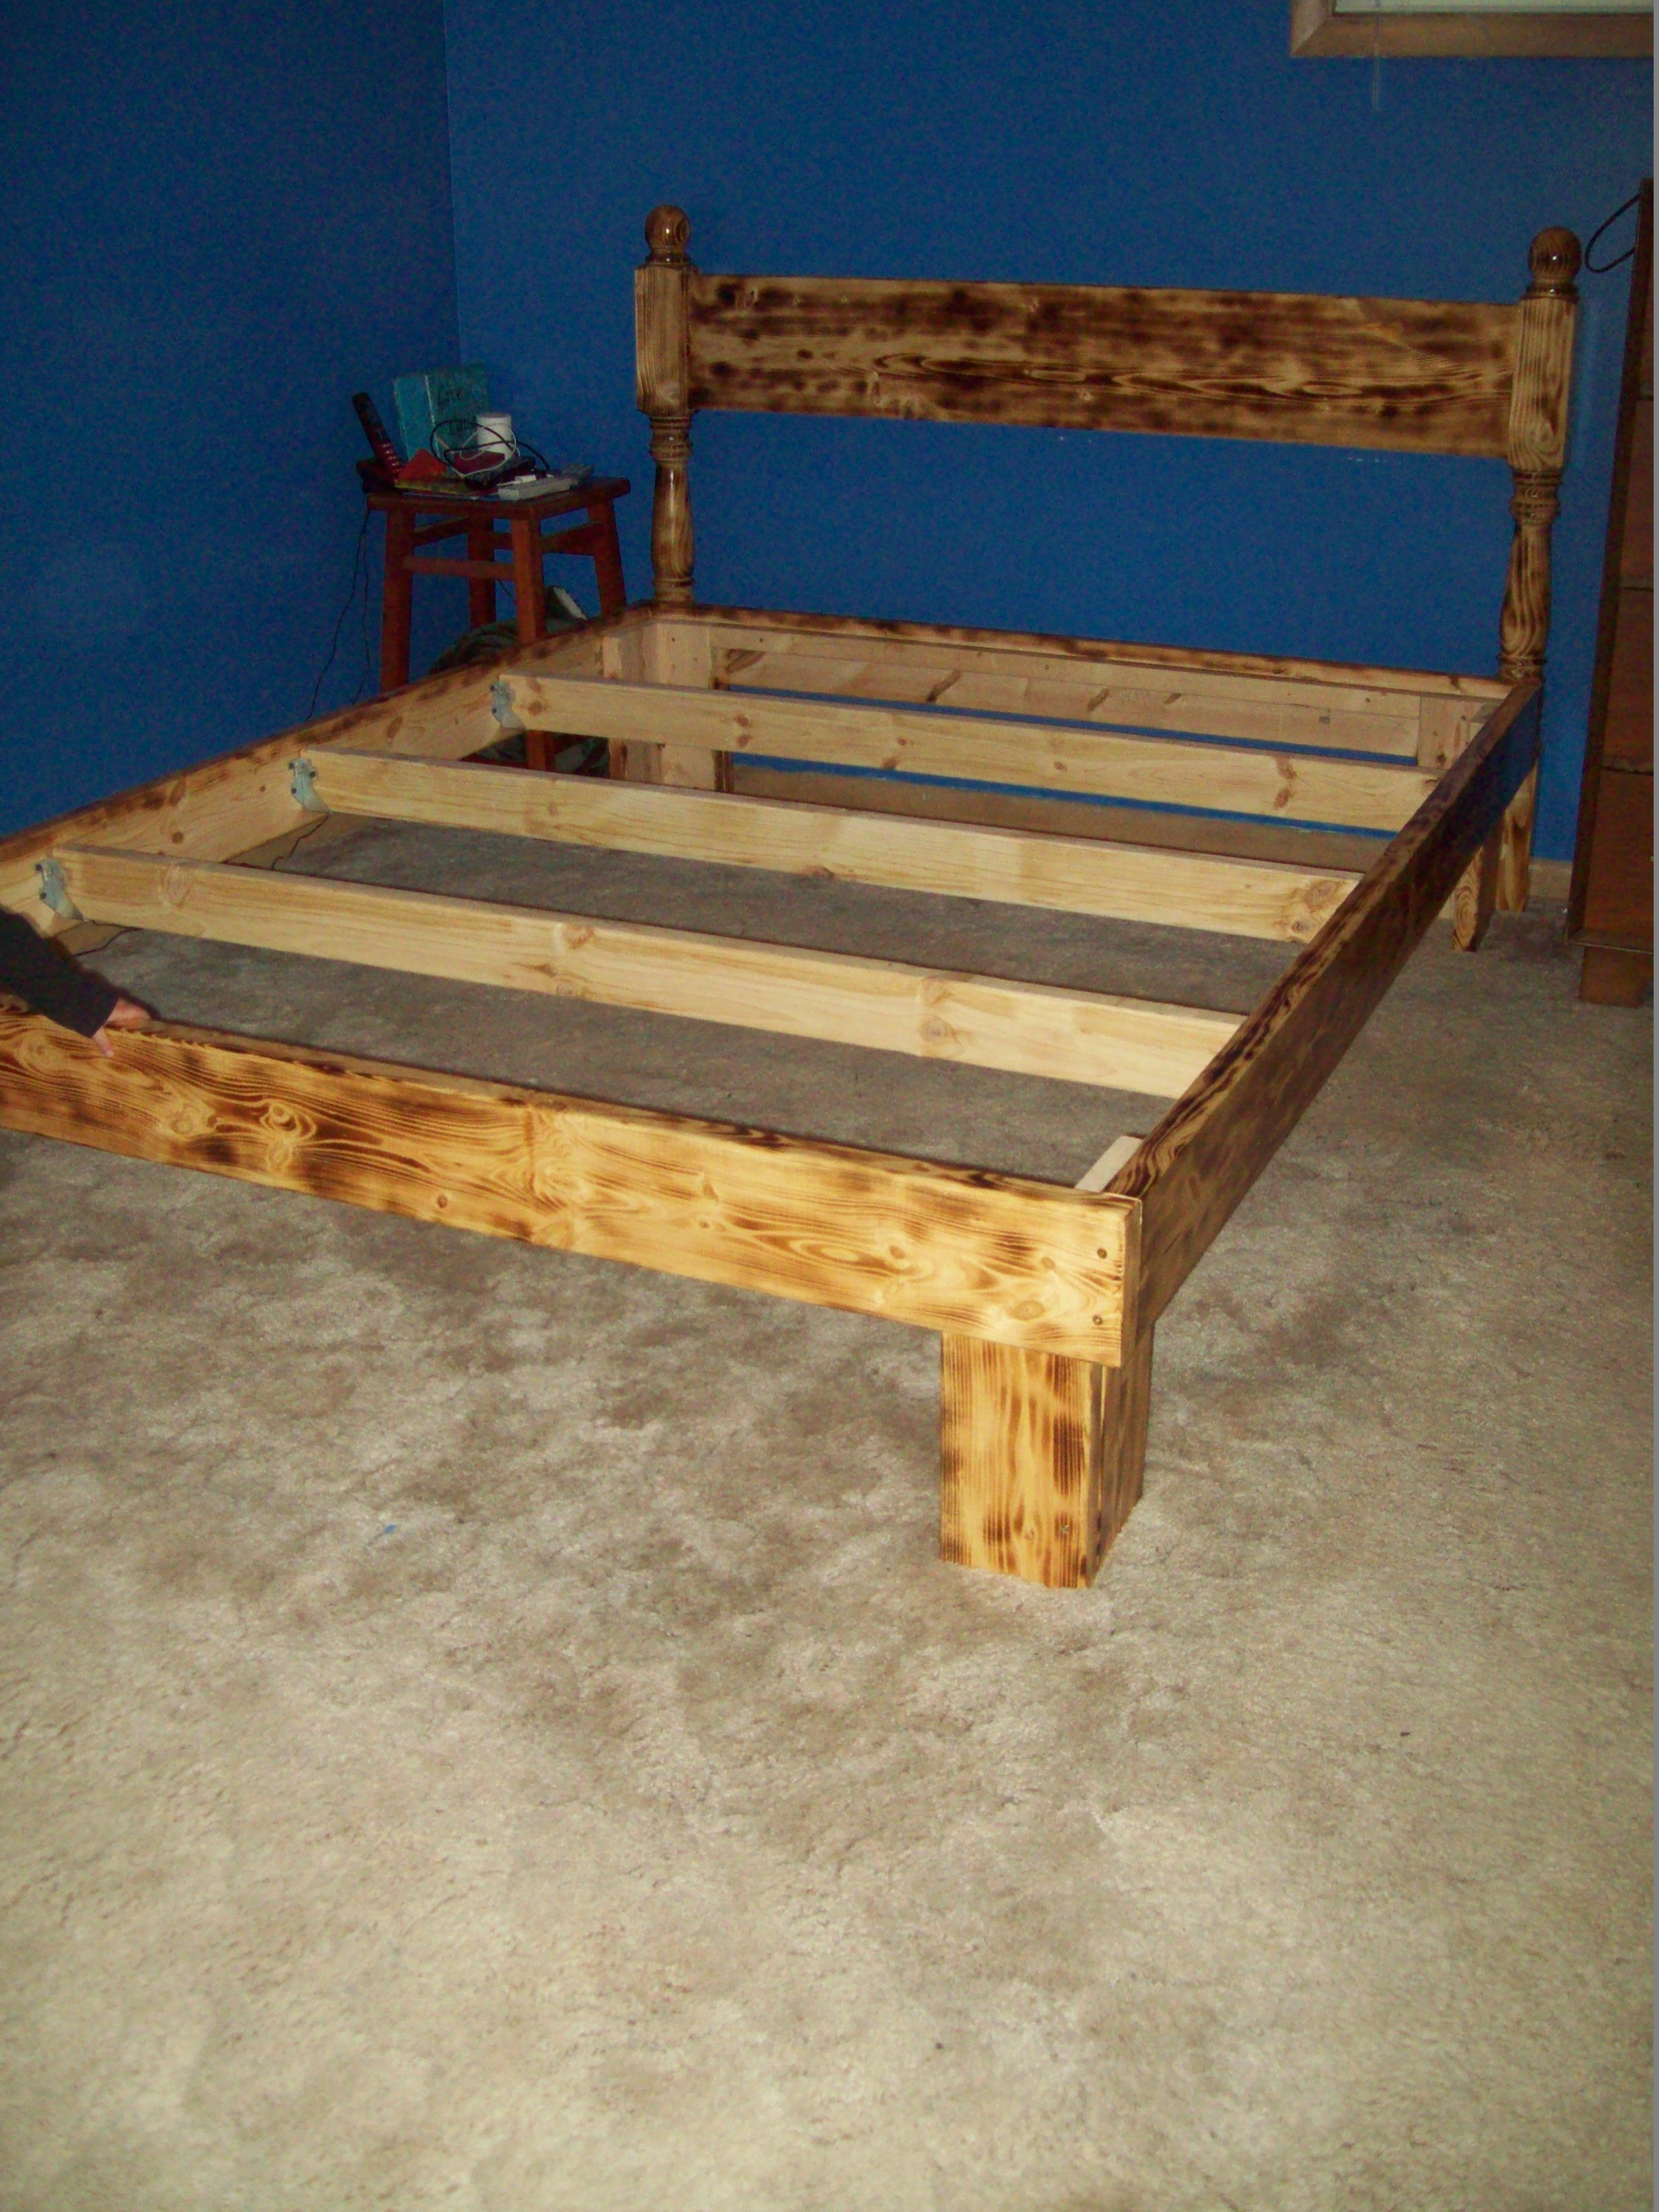 Bed Frame Made Out Of 2 X 6 Boards Burnt With A Torch And Clear Coated Homemade Bed Frame Rustic Wood Bed Rustic Wood Bed Frame